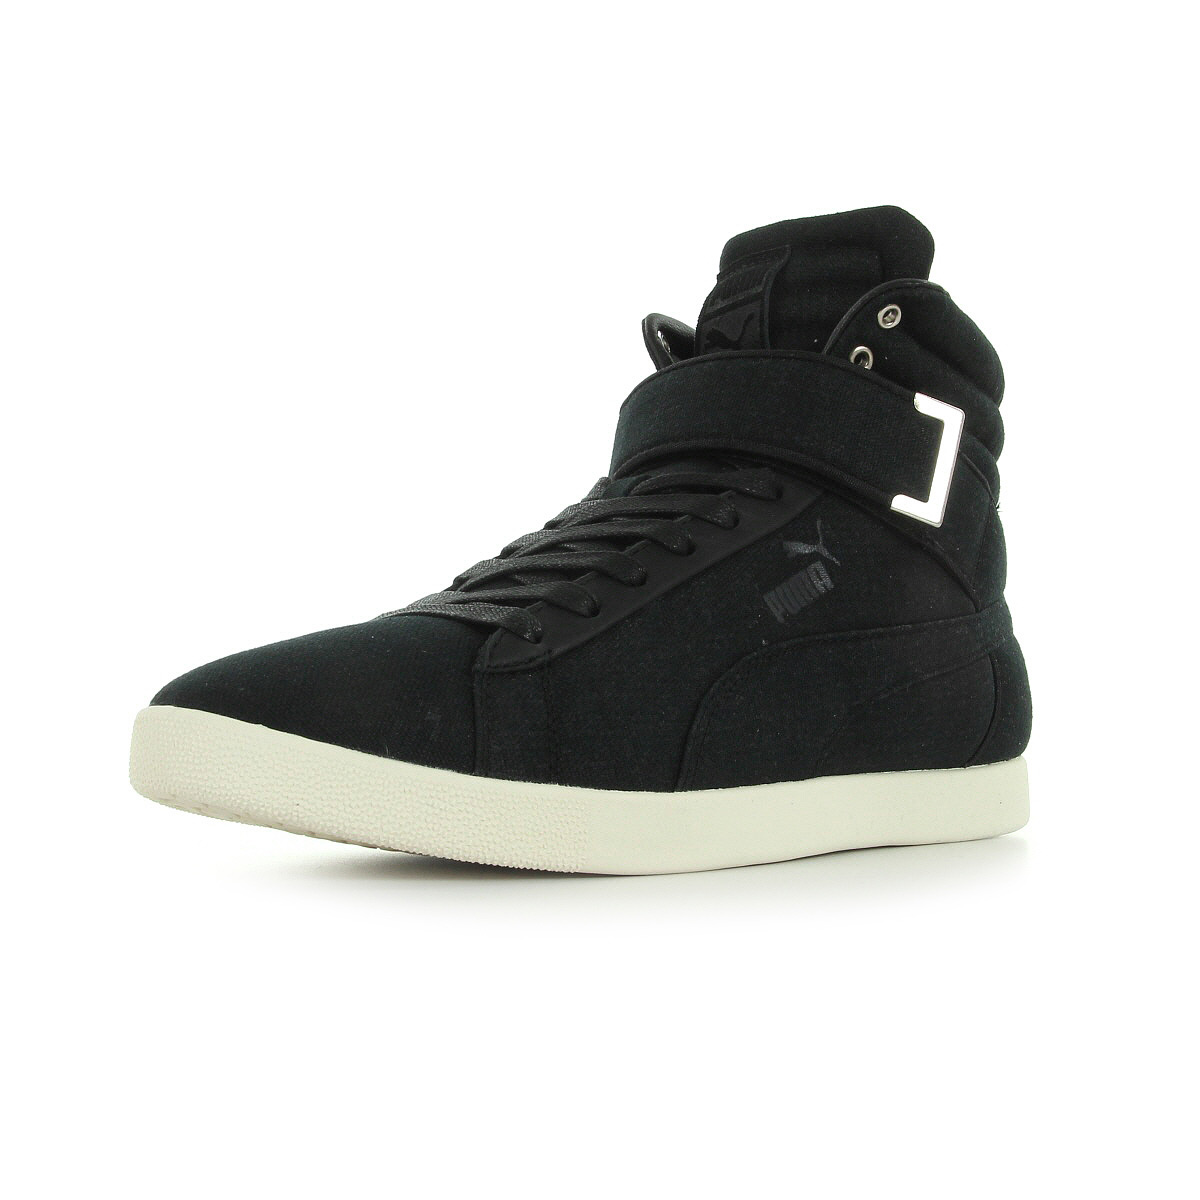 chaussures baskets puma homme modern court hi canvas taille noir noire textile ebay. Black Bedroom Furniture Sets. Home Design Ideas